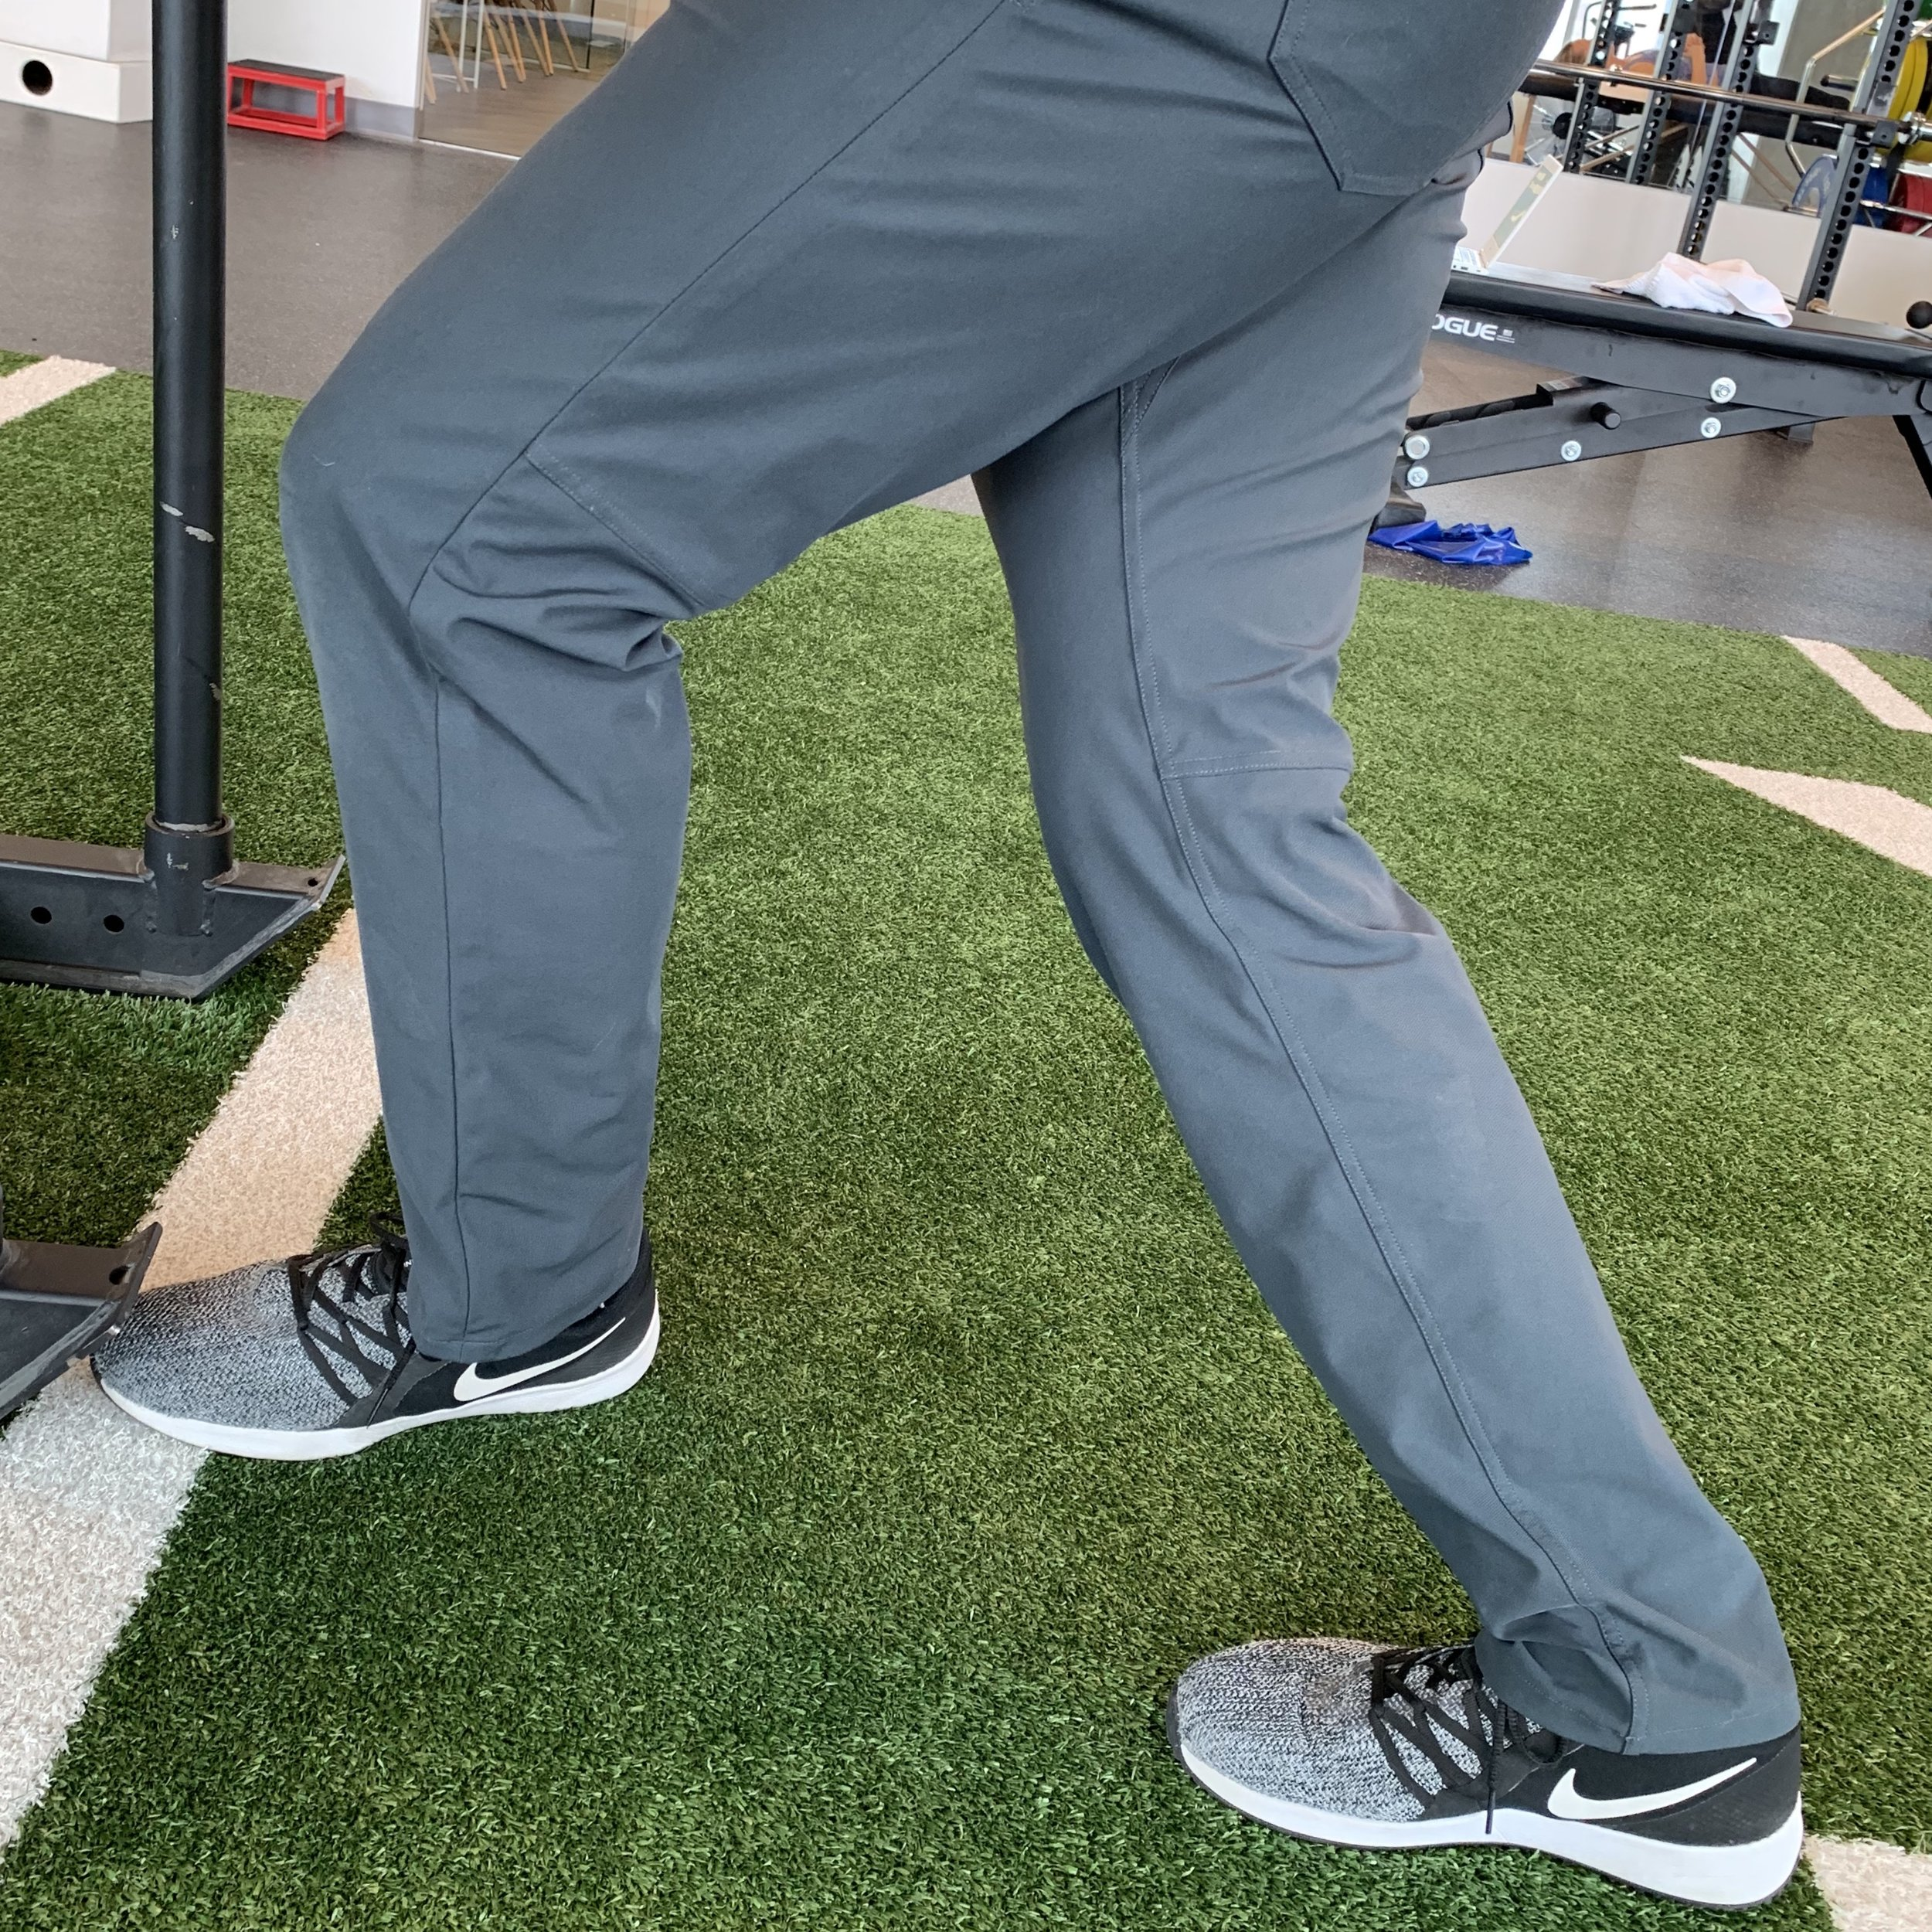 Lateral Tibia Ankle Mobilization